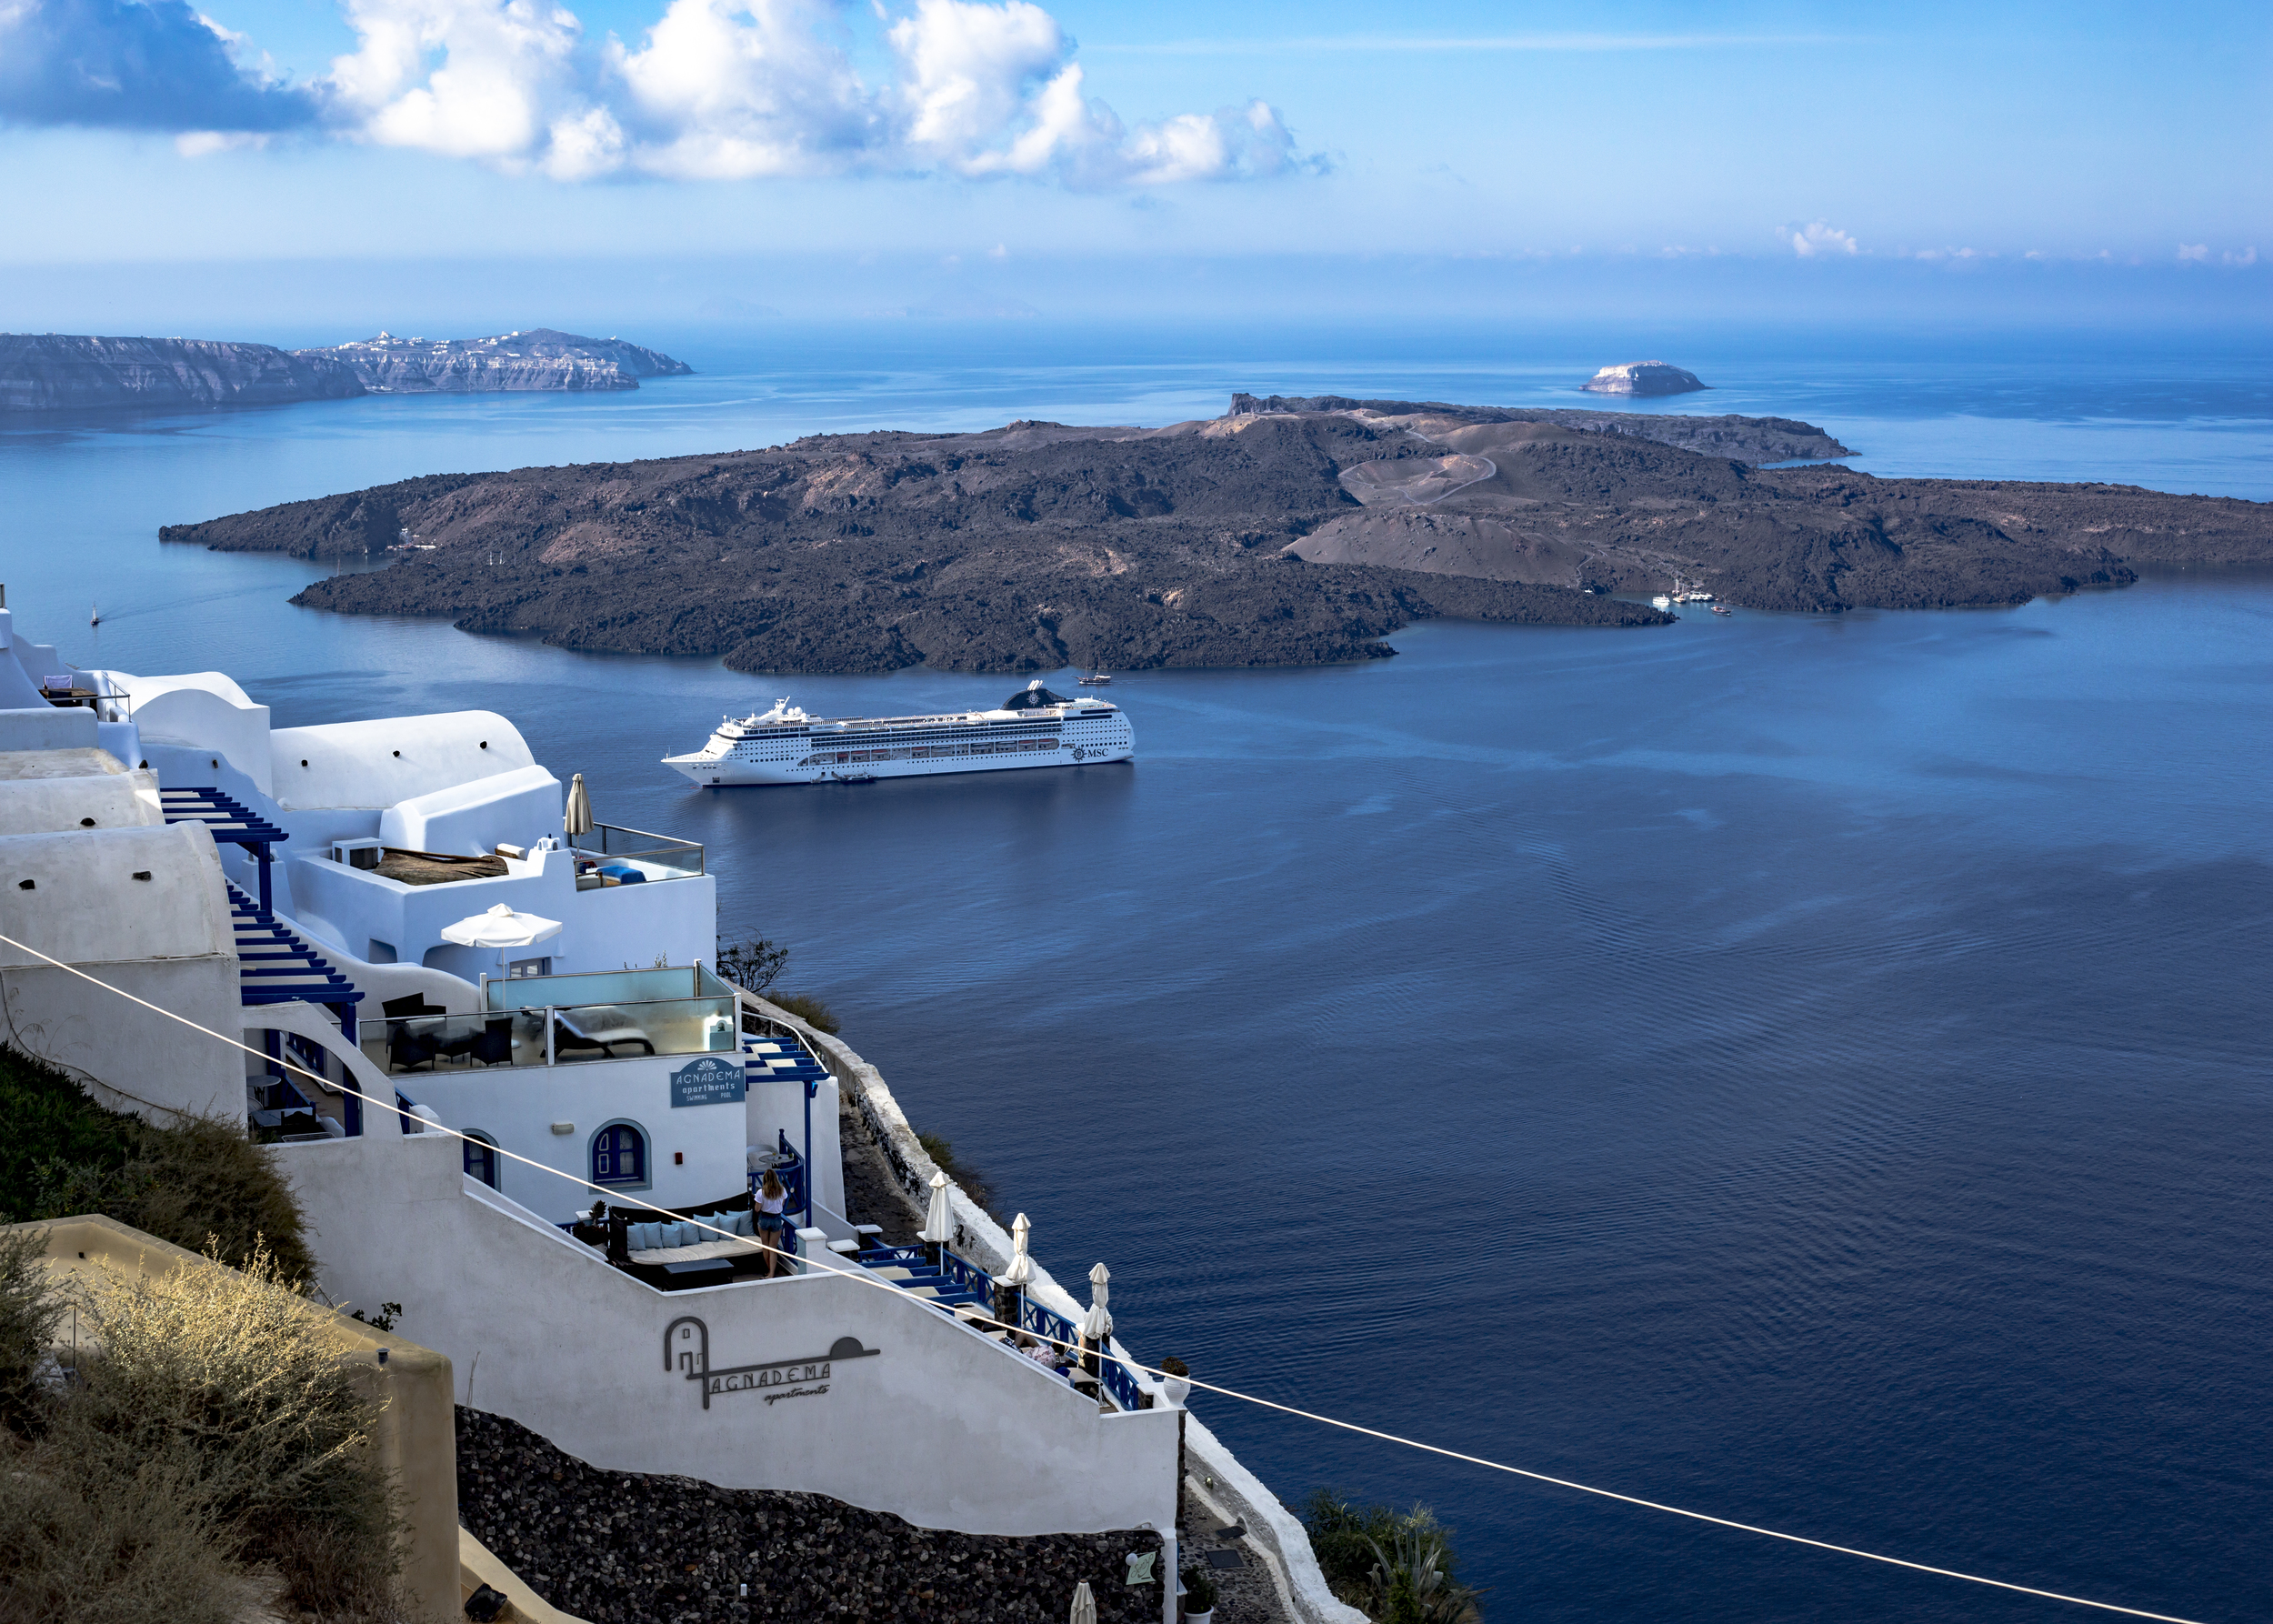 Many of the hotels in Thira offer beautiful views of the Aegean Sea.